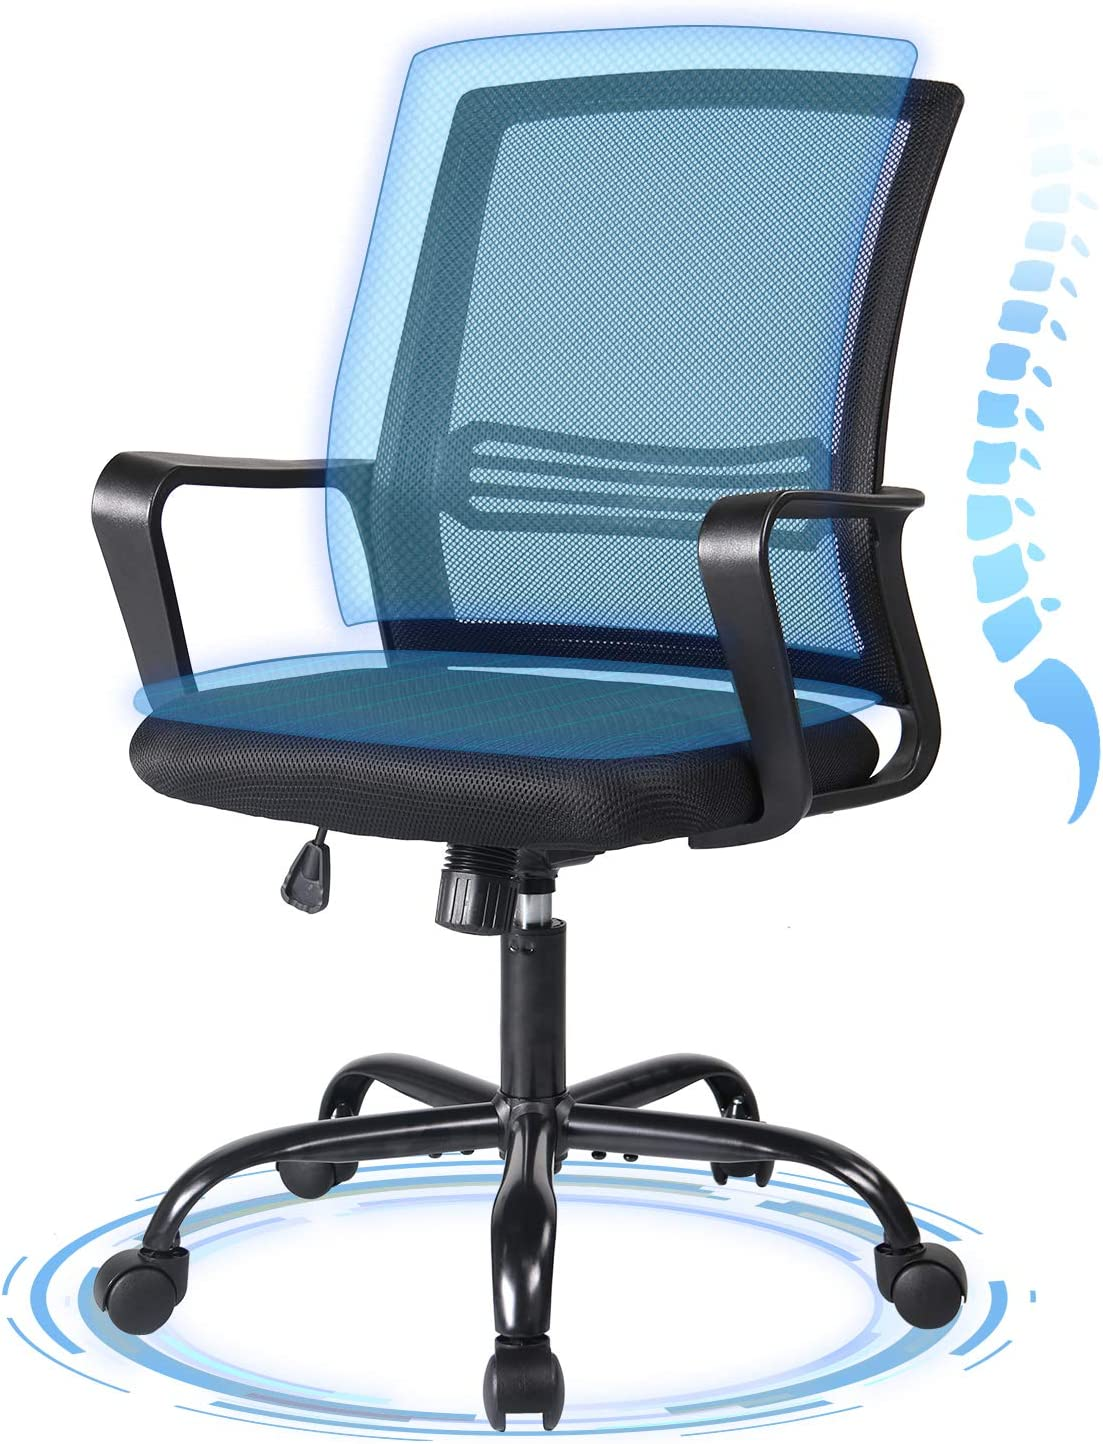 Ergonomic Office Chair Desk Chair Mesh Computer Chair Mid Back Task Chair With Lumbar Support And Armrest Furniture Decor